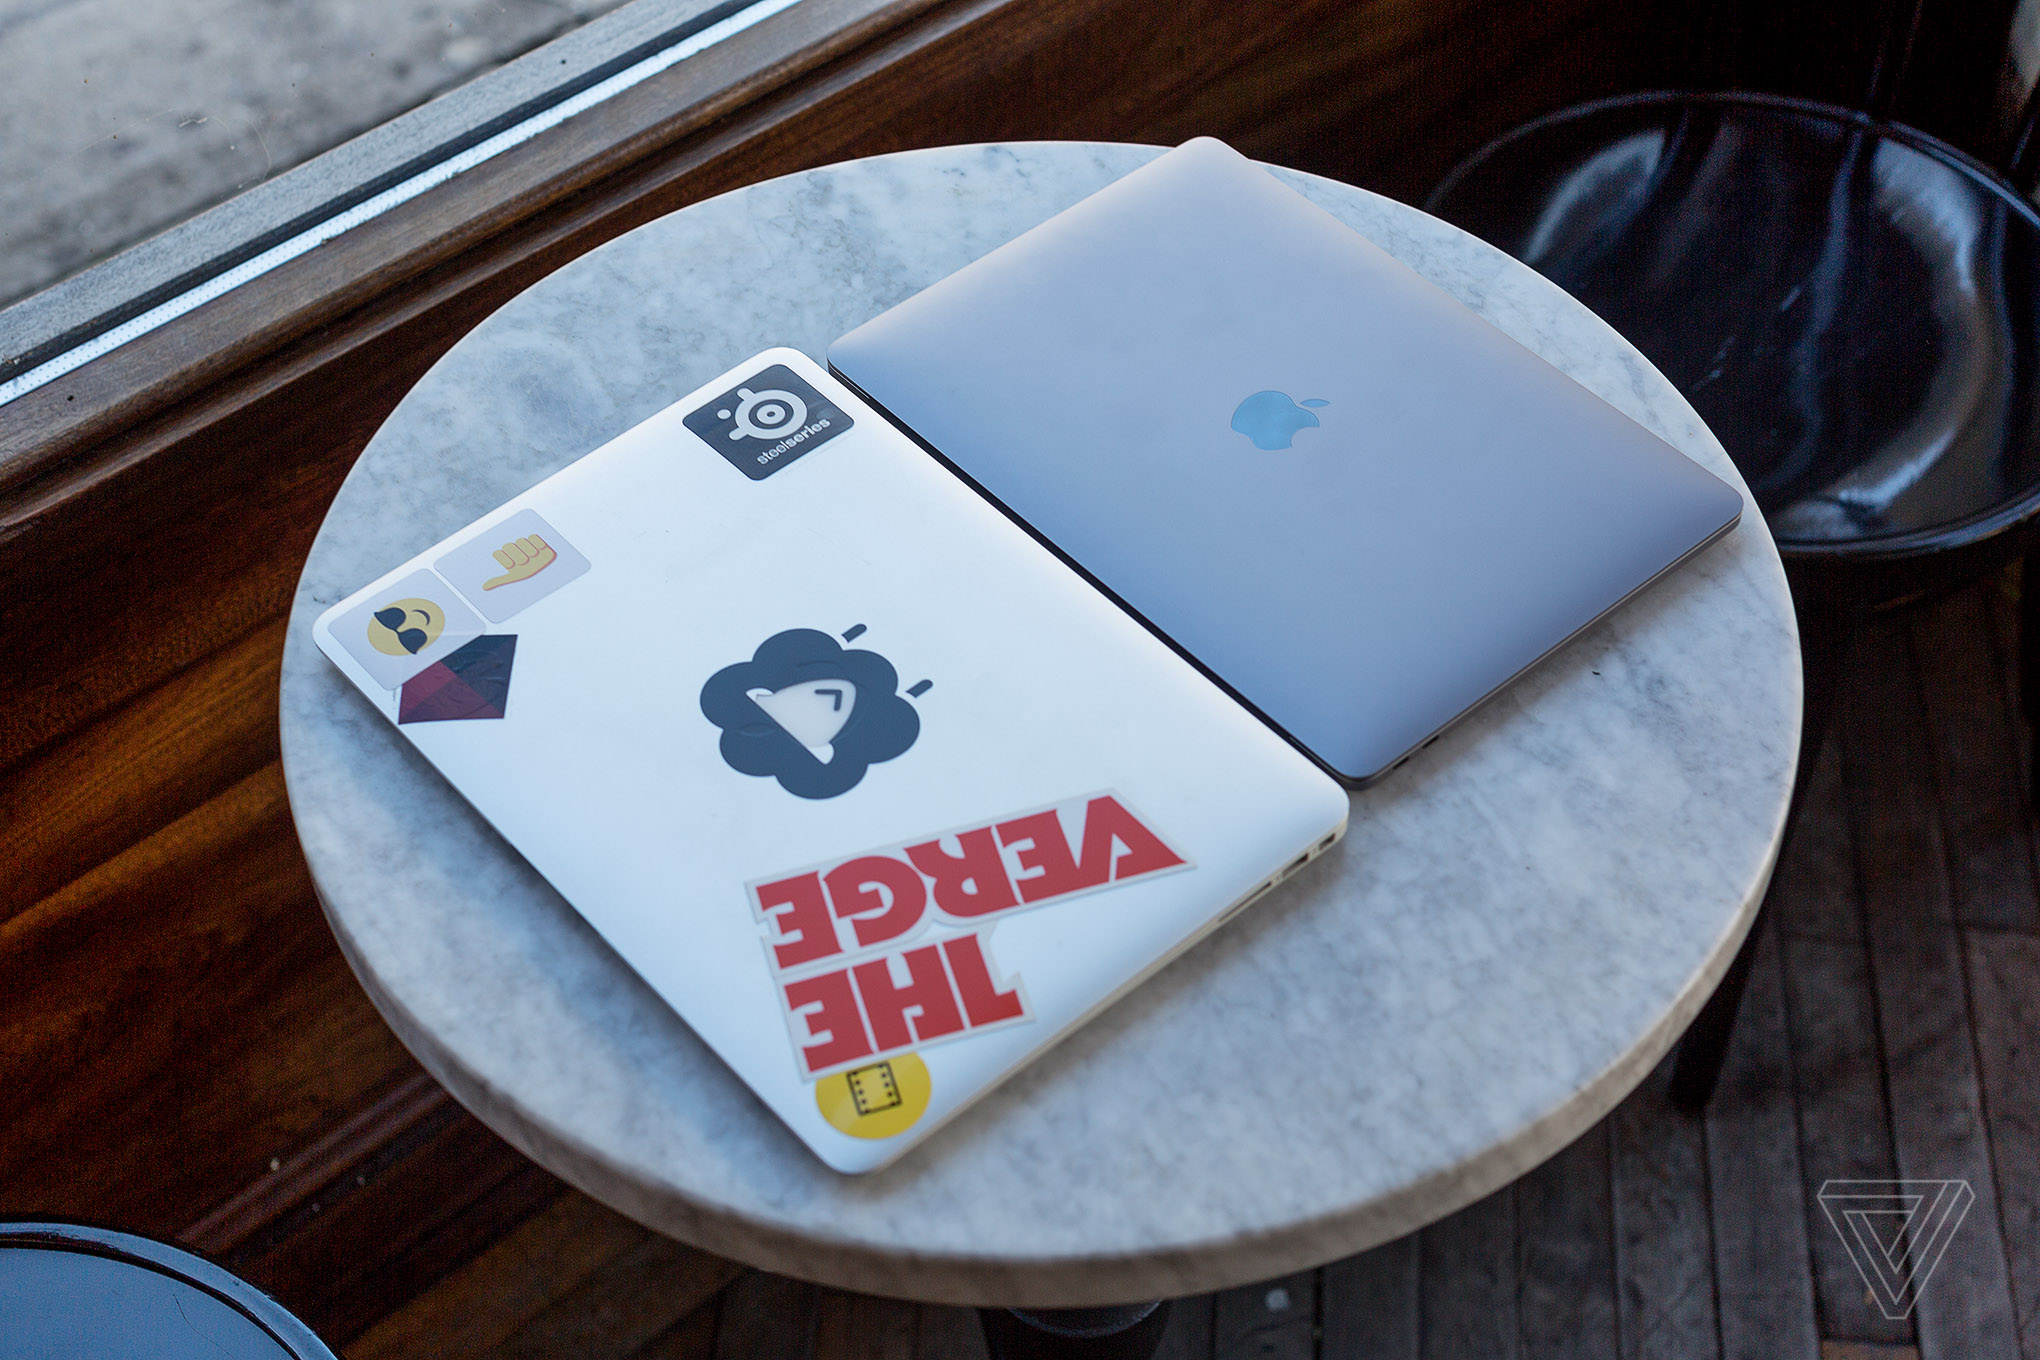 Buying a Macbook Pro, is it worth my time?